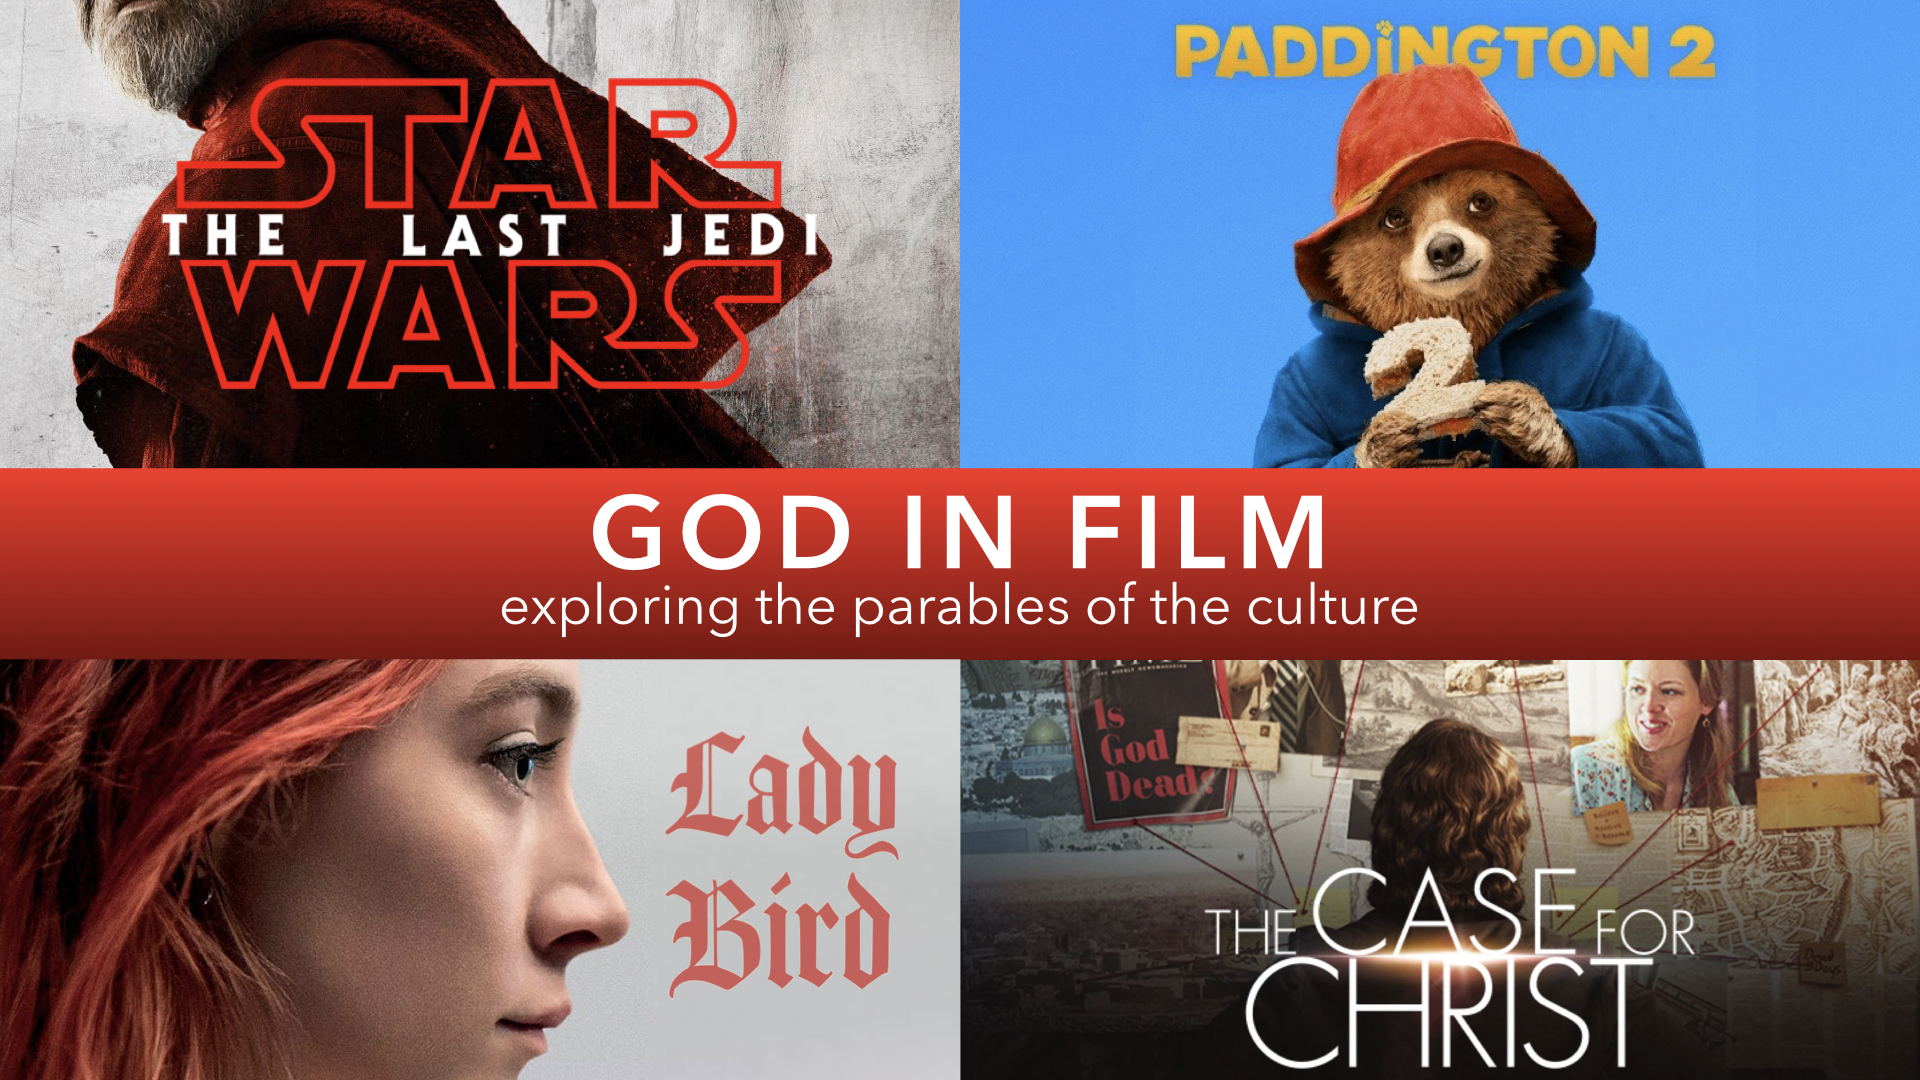 GOD IN FILM 2018 | PADDINGTON 2: CHANGE YOUR ENVIRONMENT - PHIL CHORLIAN | 8.12.2018 | WATCH